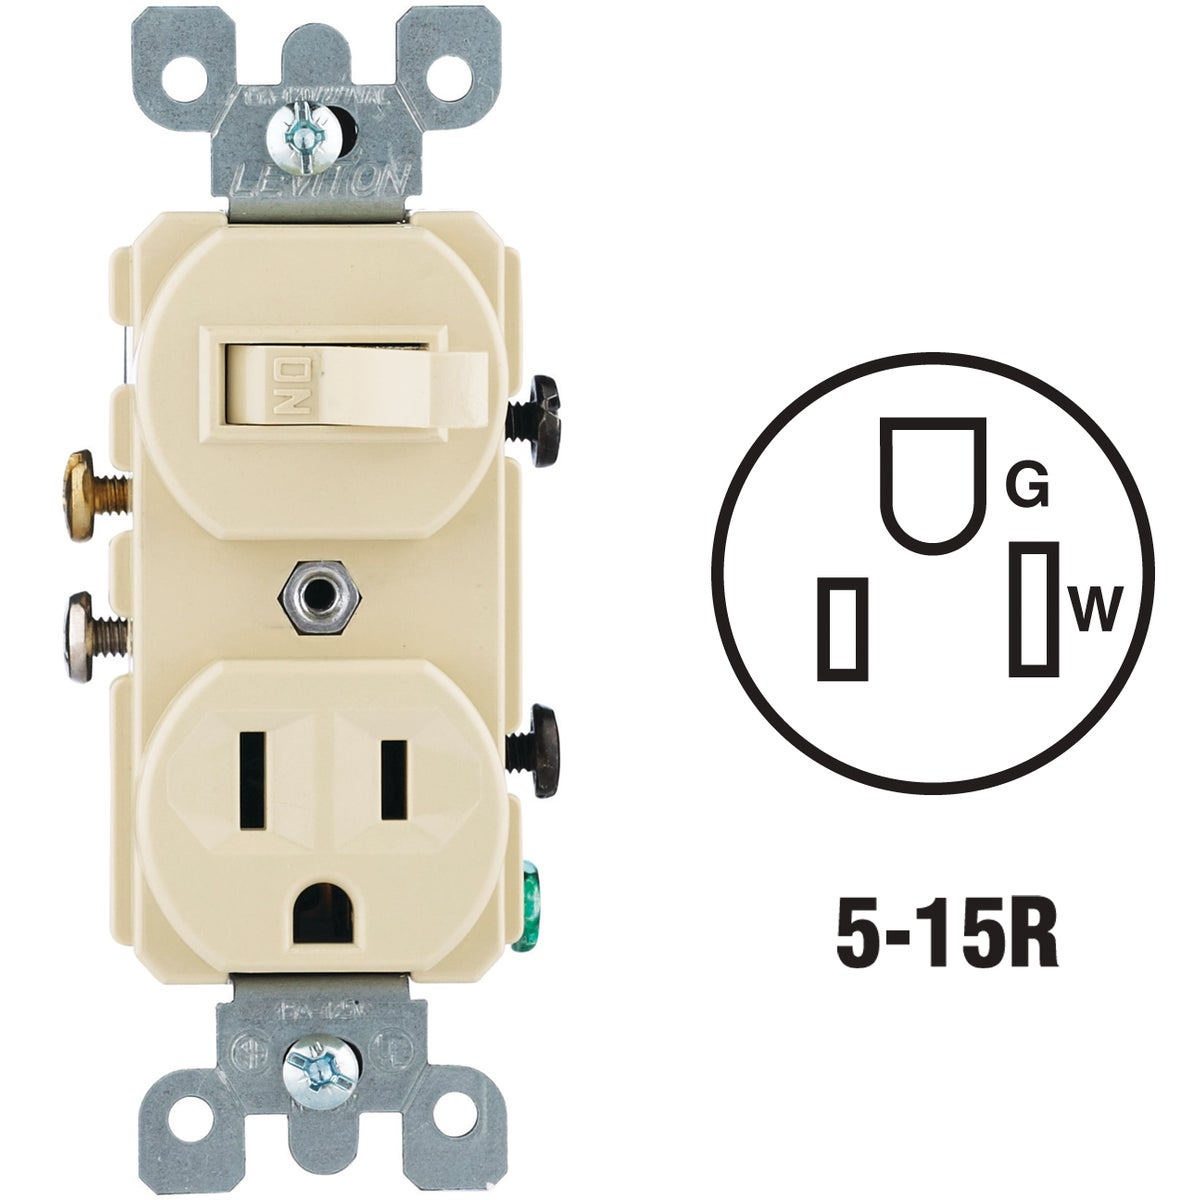 IV SWITCH/OUTLET